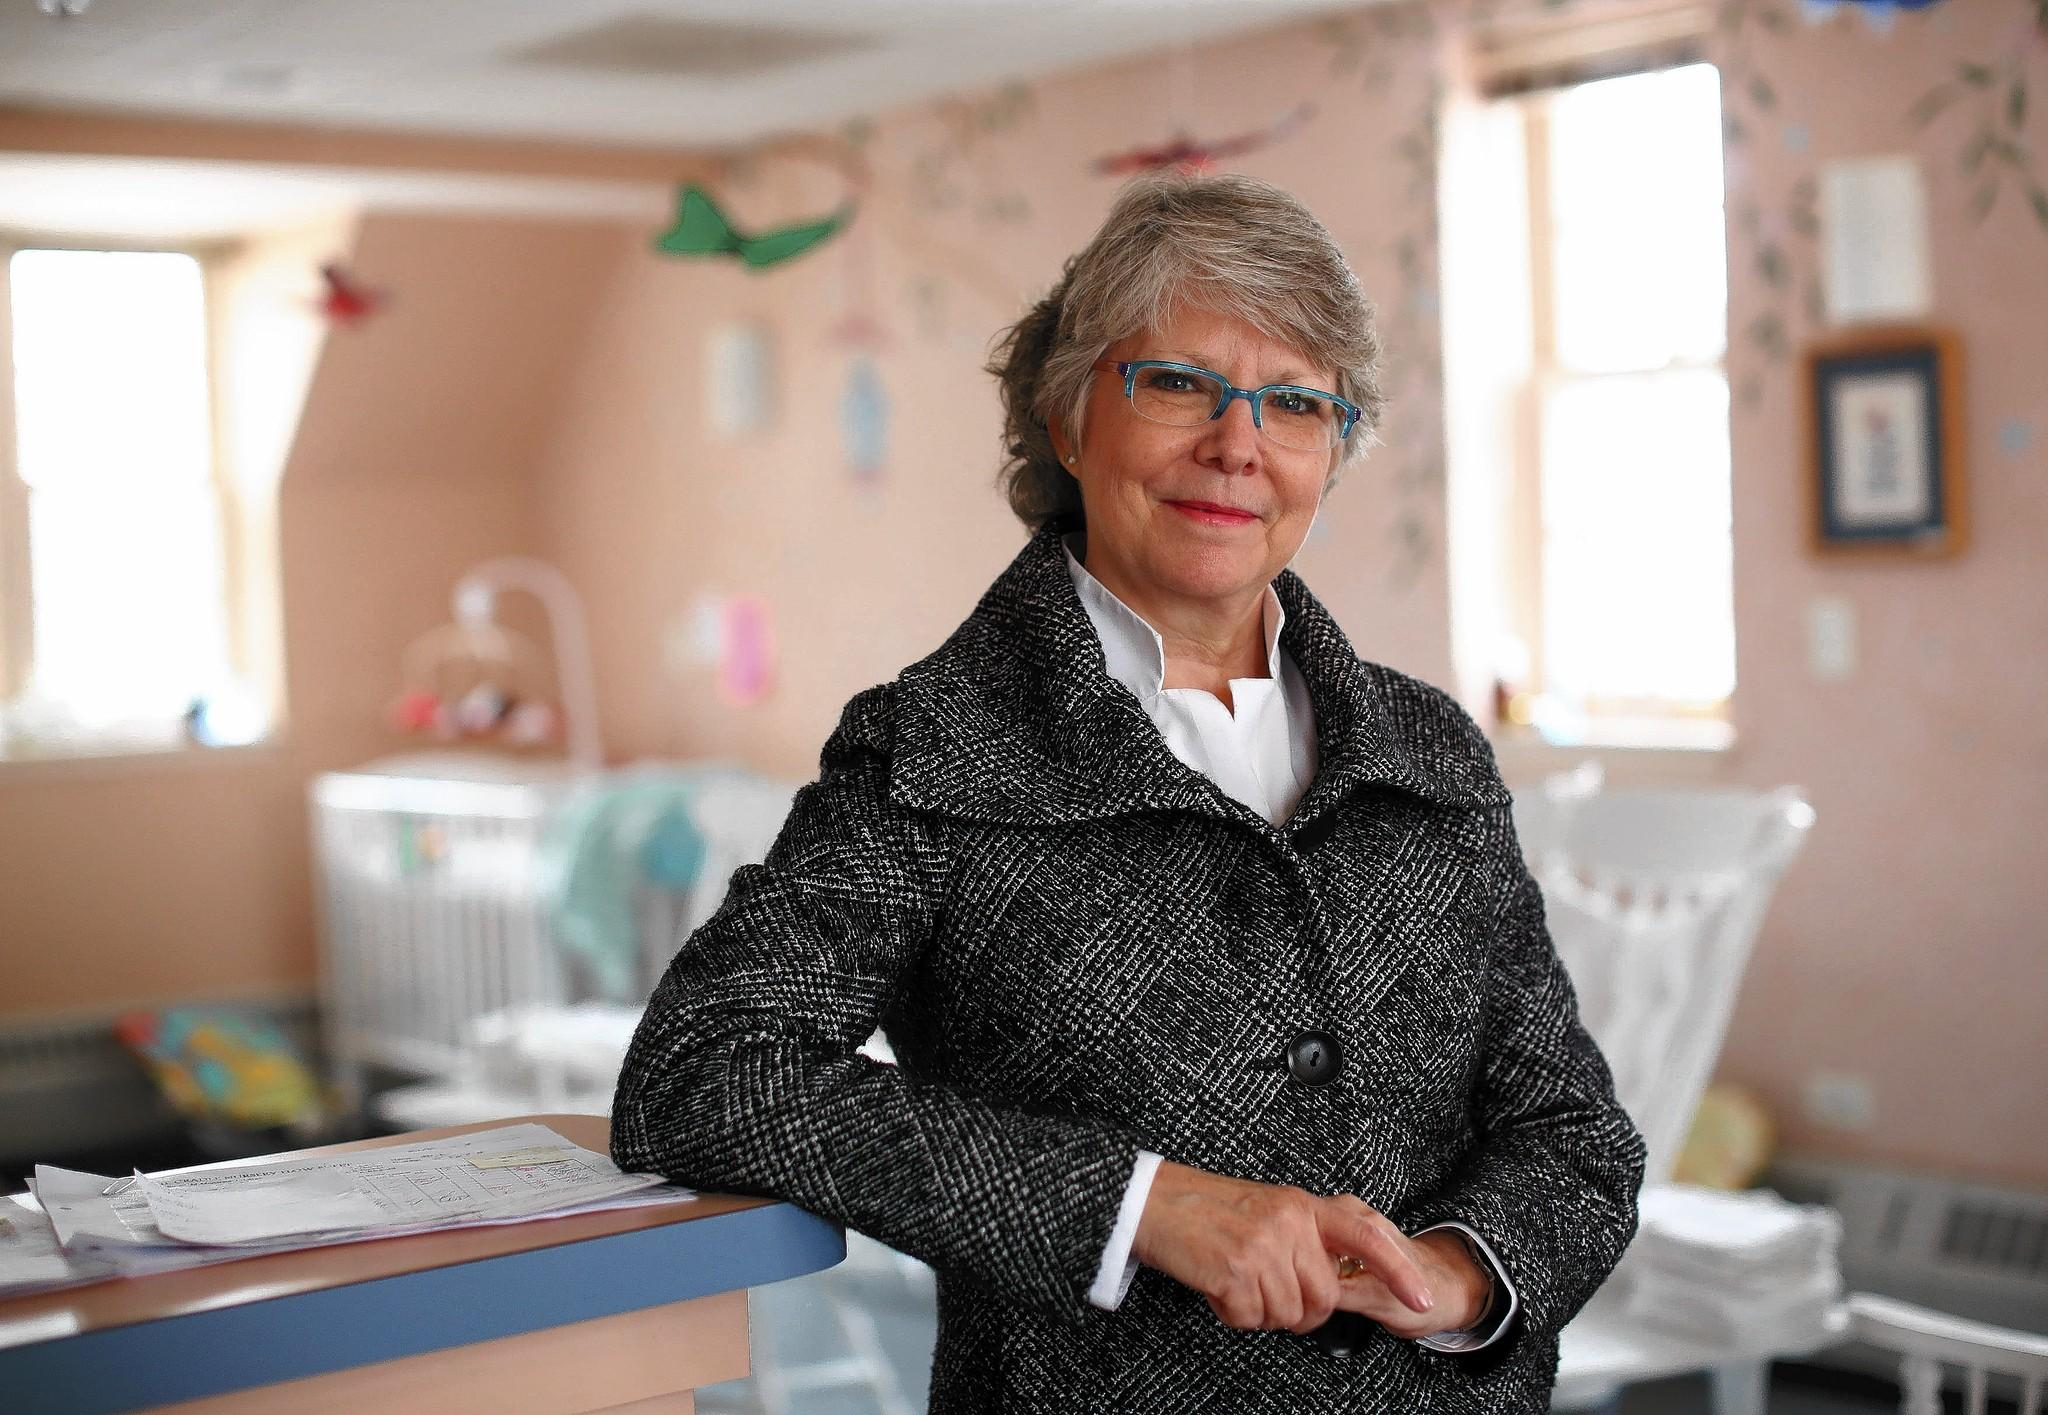 """Julie Tye, president and CEO of The Cradle adoption agency in Evanston: """"People say I'm competitive, and that has a grain of truth to it, but I'm mainly collaborative. My motto is: If you can't join 'em, beat 'em."""""""